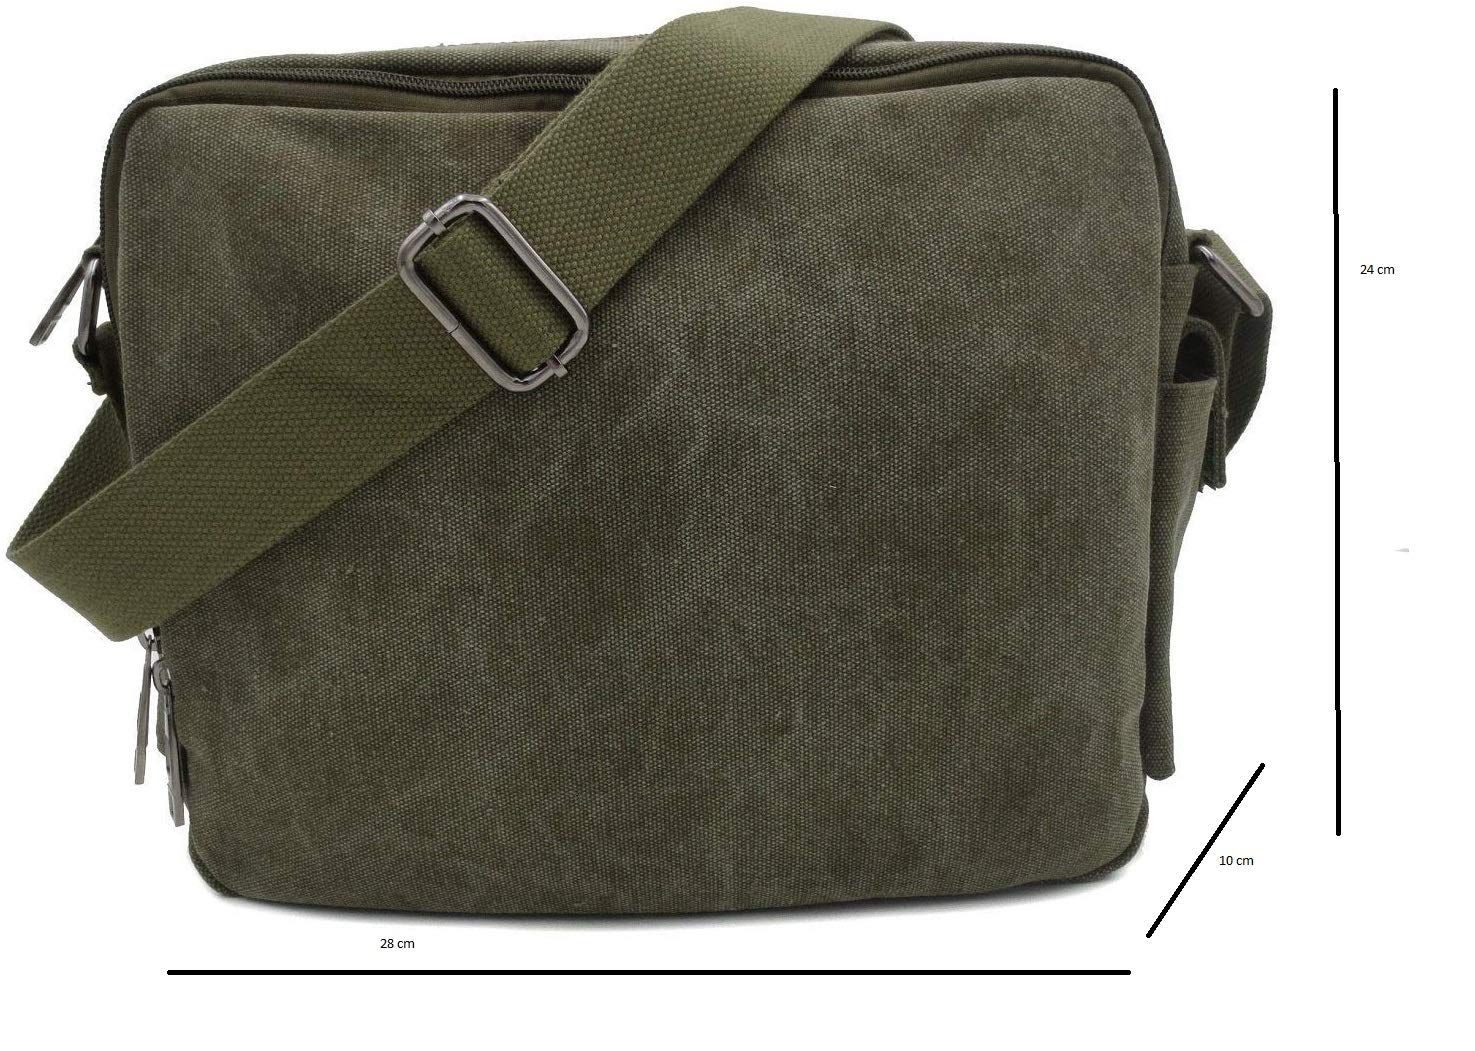 34d6e67a18a Aeoss Multifunction Men Canvas Bag Casual Travel Bolsa Masculina Men S  Crossbody Bag Men Messenger Bags  Amazon.in  Bags, Wallets   Luggage